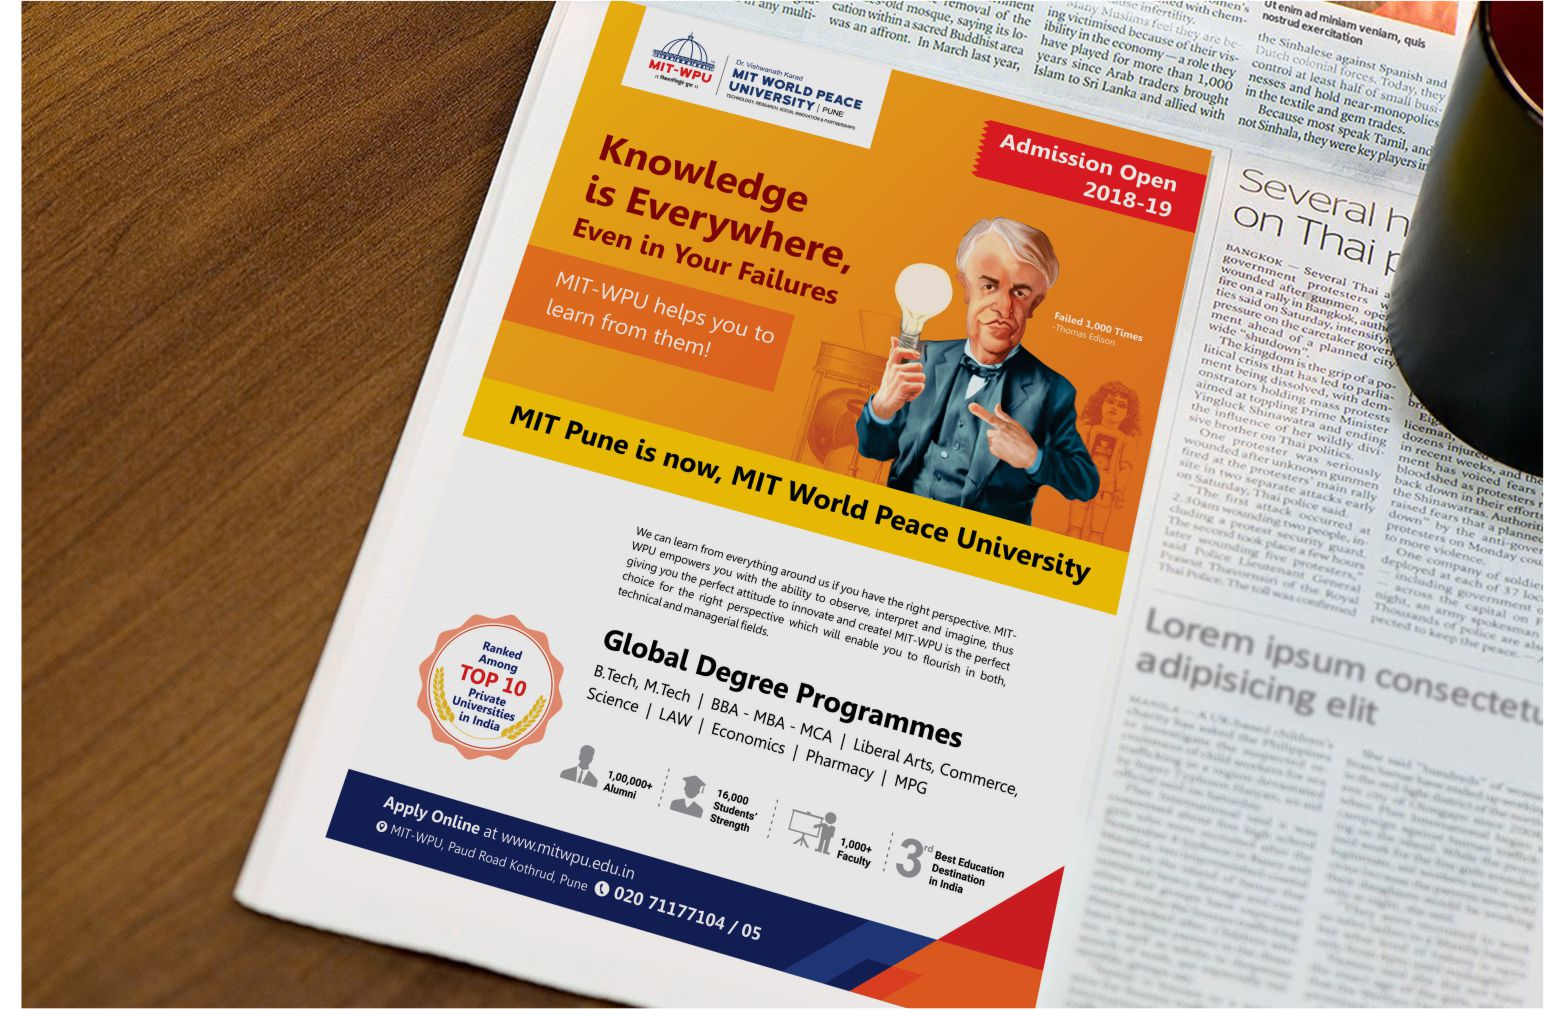 onezeroeight-mit-casestudy-newspaper-campaign-knowledge-is-everywhere-thomas-edison